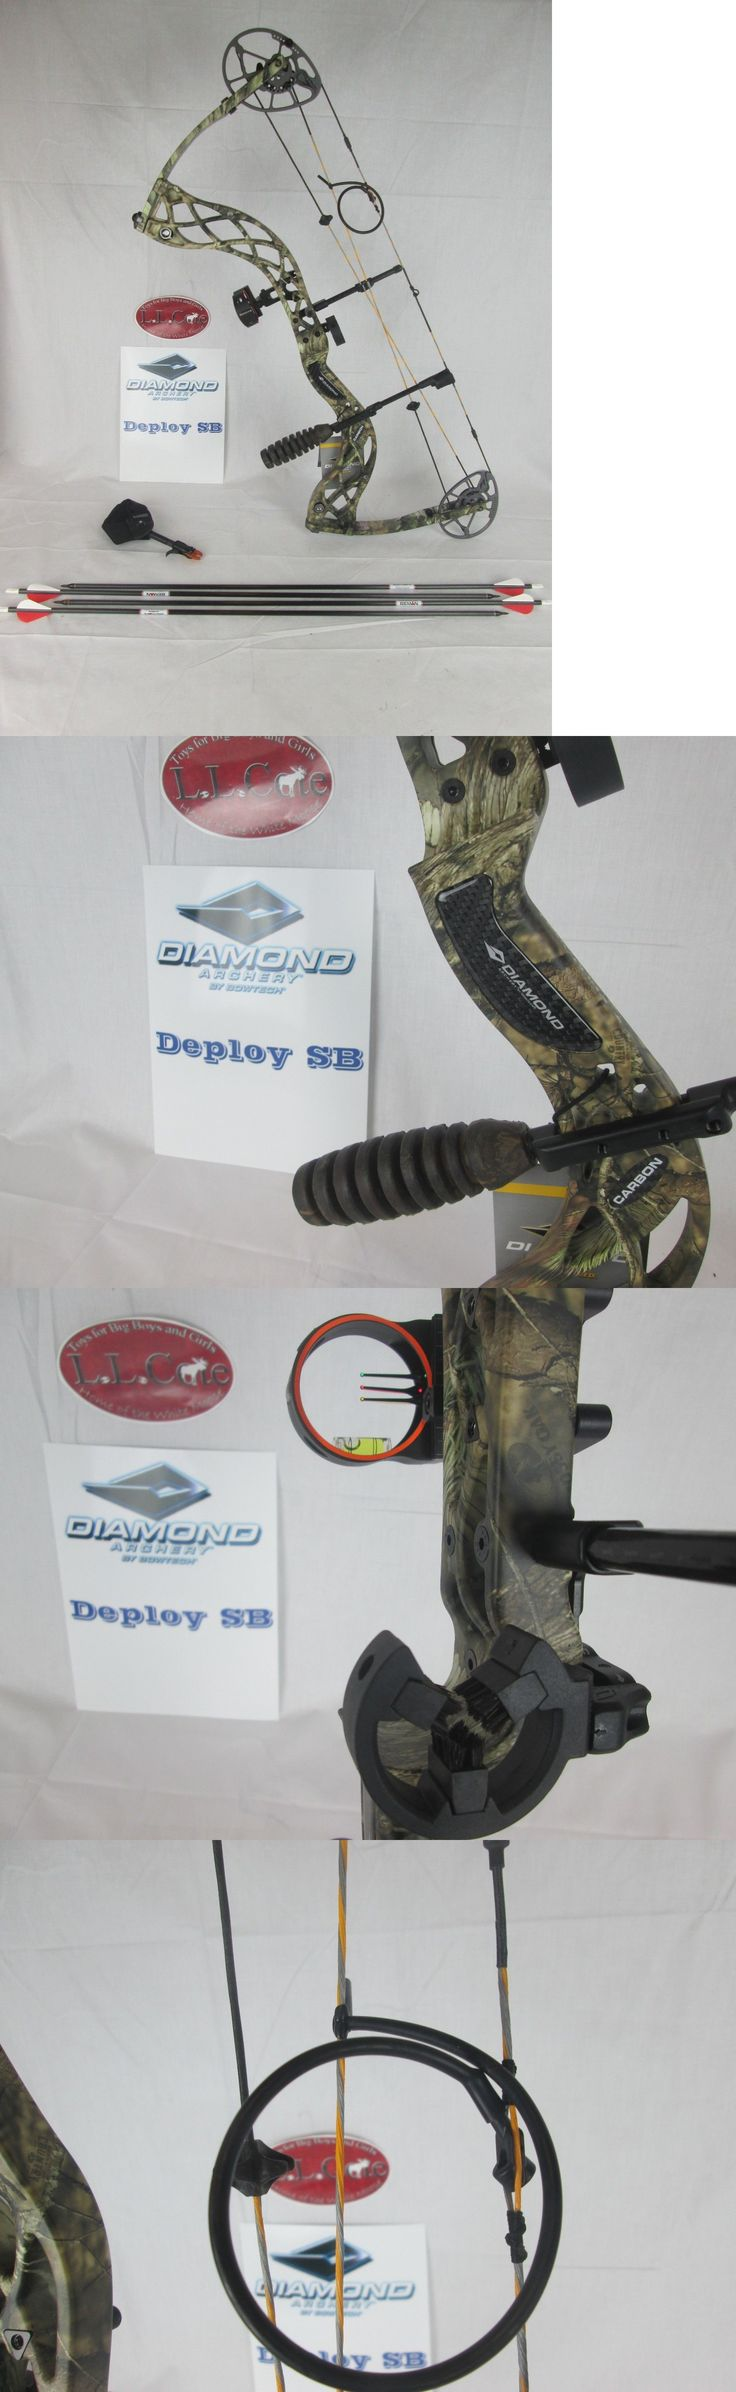 Compound 20838: Diamond Deploy Sb Compound Bow Package Right Hand 60Lbs Camo And Arrows -> BUY IT NOW ONLY: $599.98 on eBay!